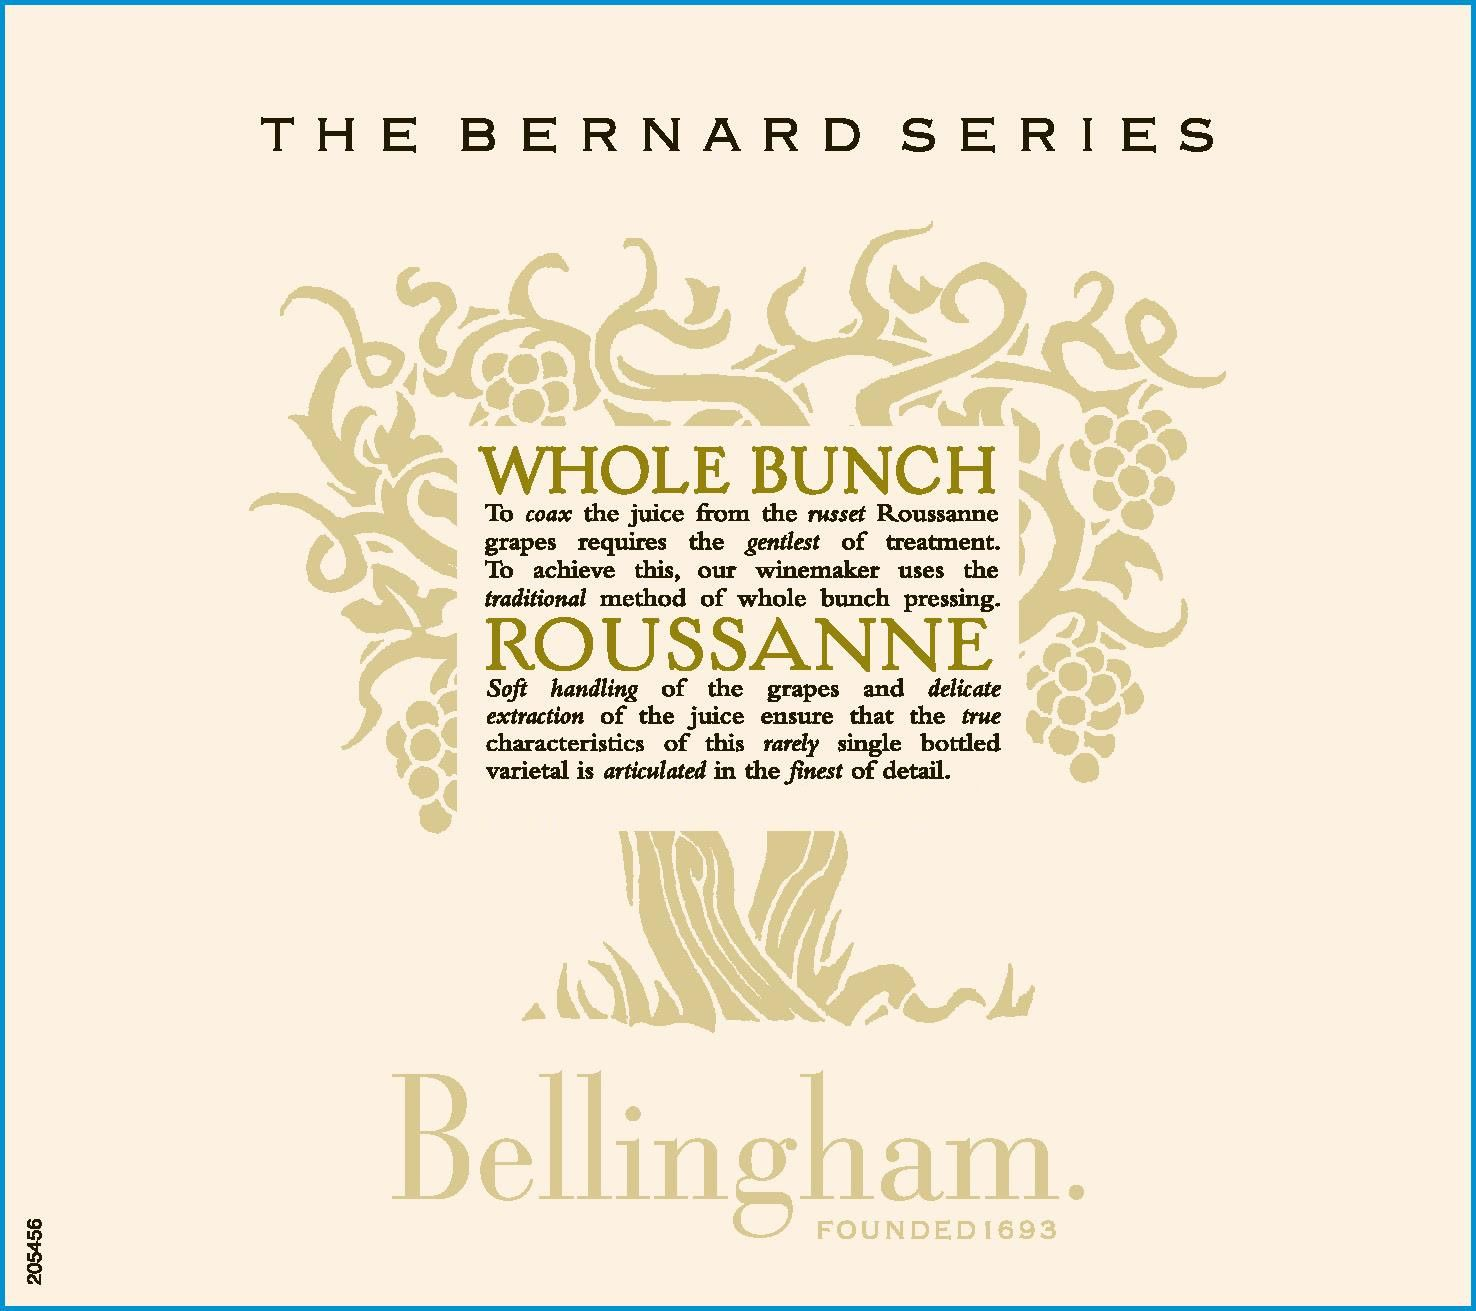 Bellingham The Bernard Series Whole Bunch Rousanne 2015 Front Label